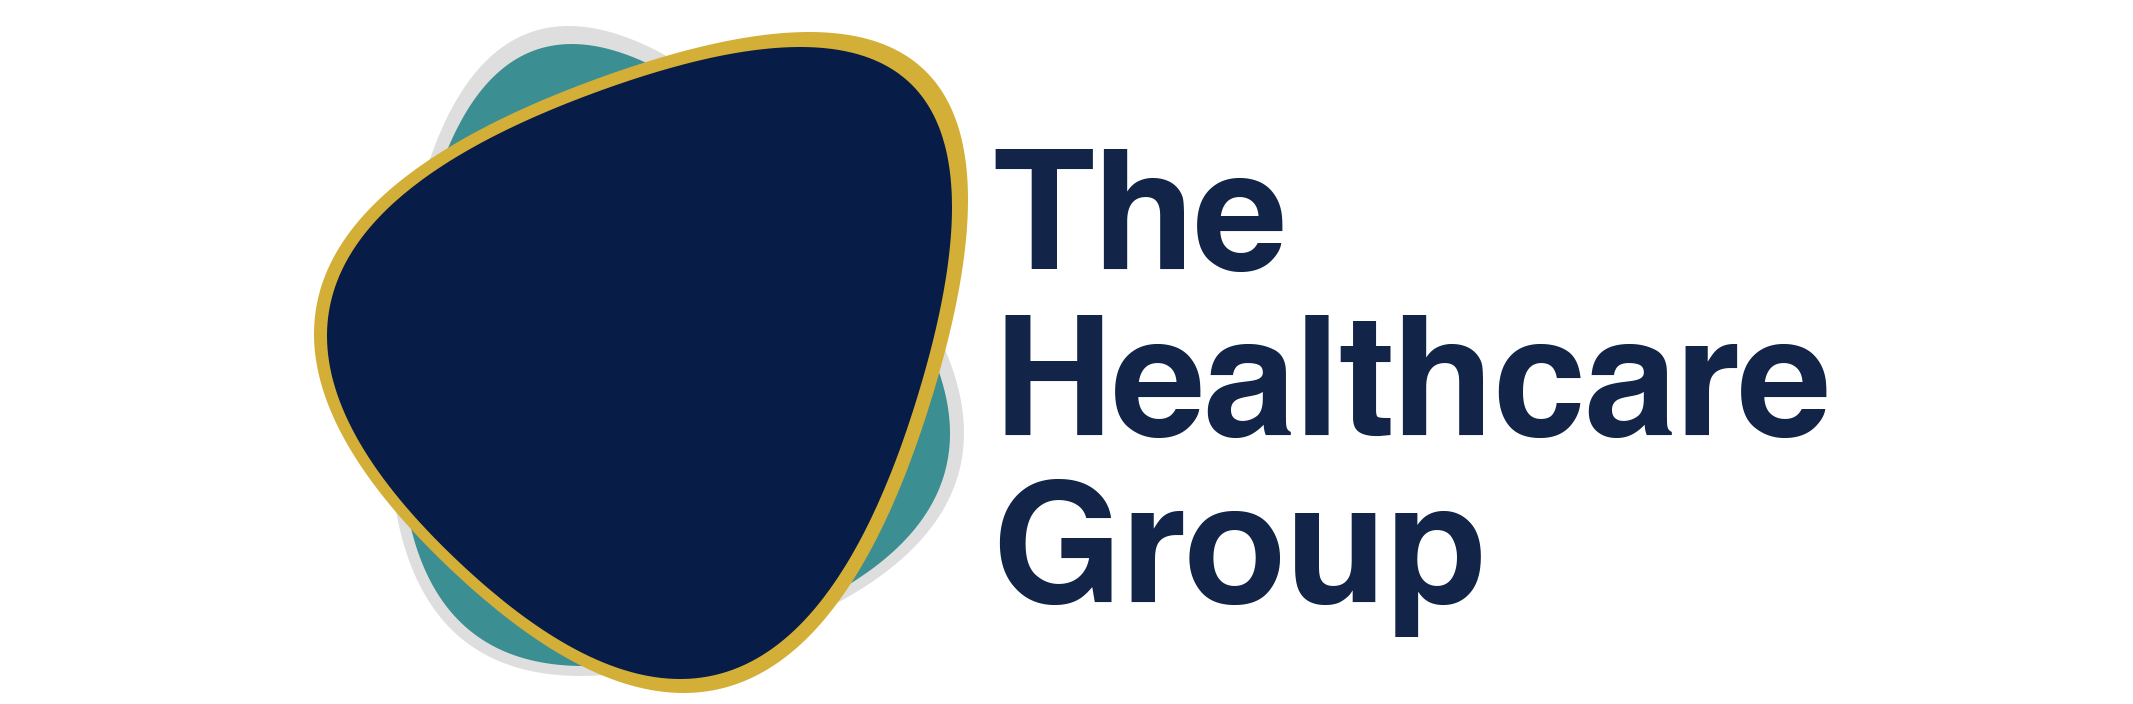 The Healthcare Group